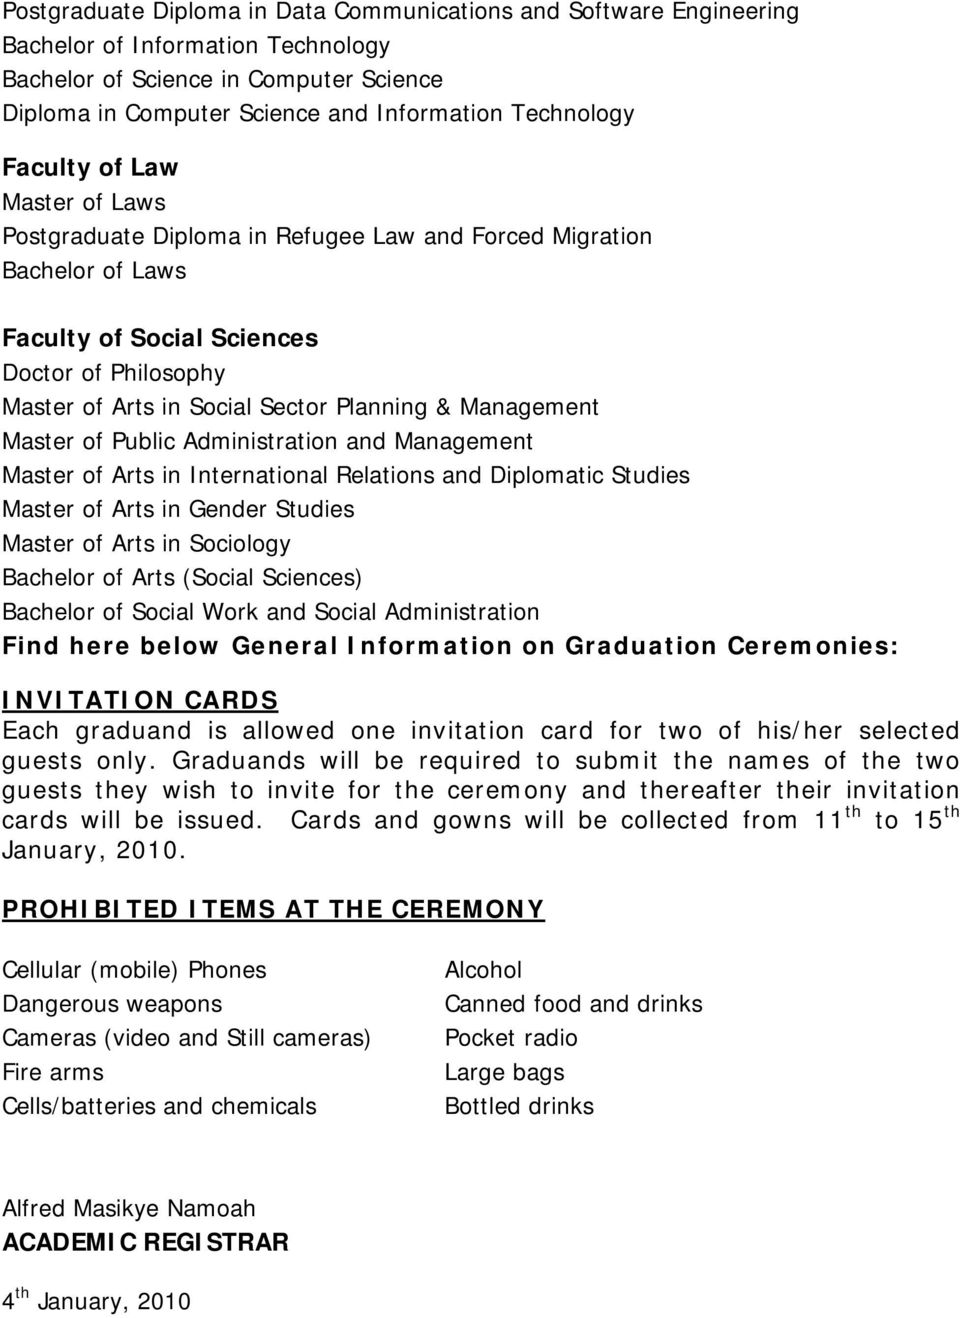 Public Administration and Management Master of Arts in International Relations and Diplomatic Studies Master of Arts in Gender Studies Master of Arts in Sociology Bachelor of Arts (Social Sciences)